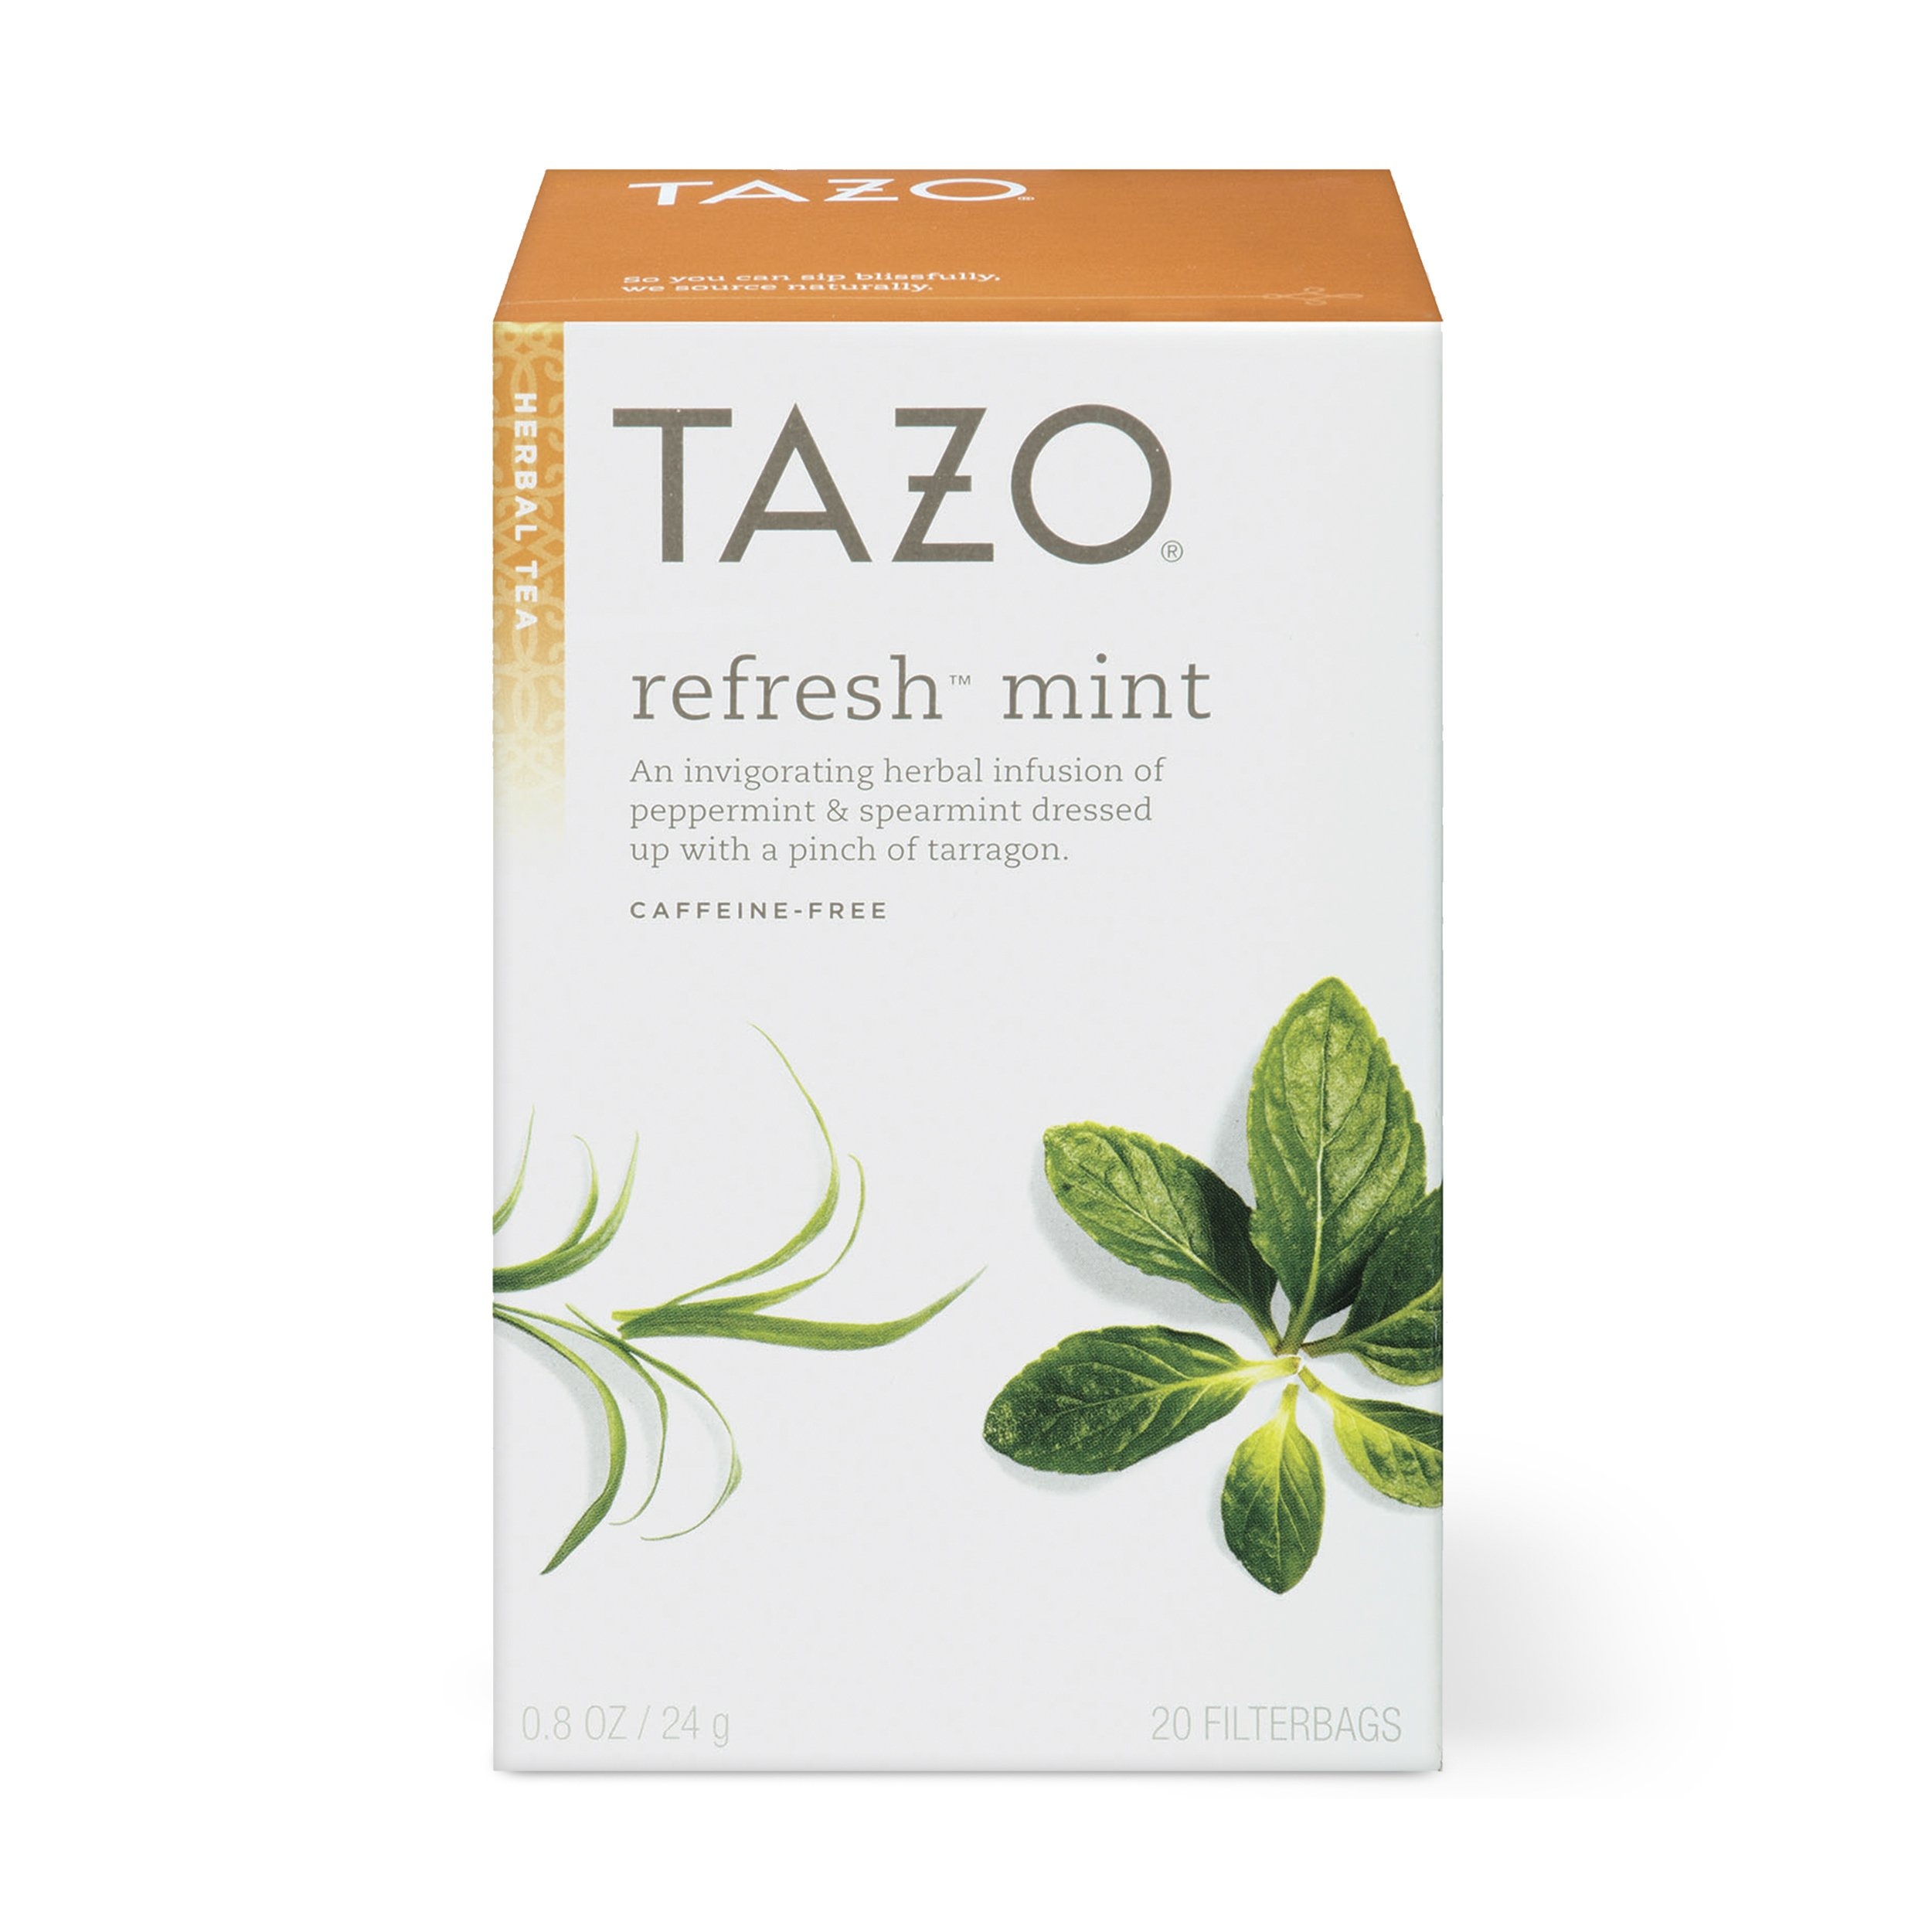 Amazon decaf lotus blossom green fb 20ct6 20 per case on tazo refresh mint herbal tea filterbags 20 count pack of 6 izmirmasajfo